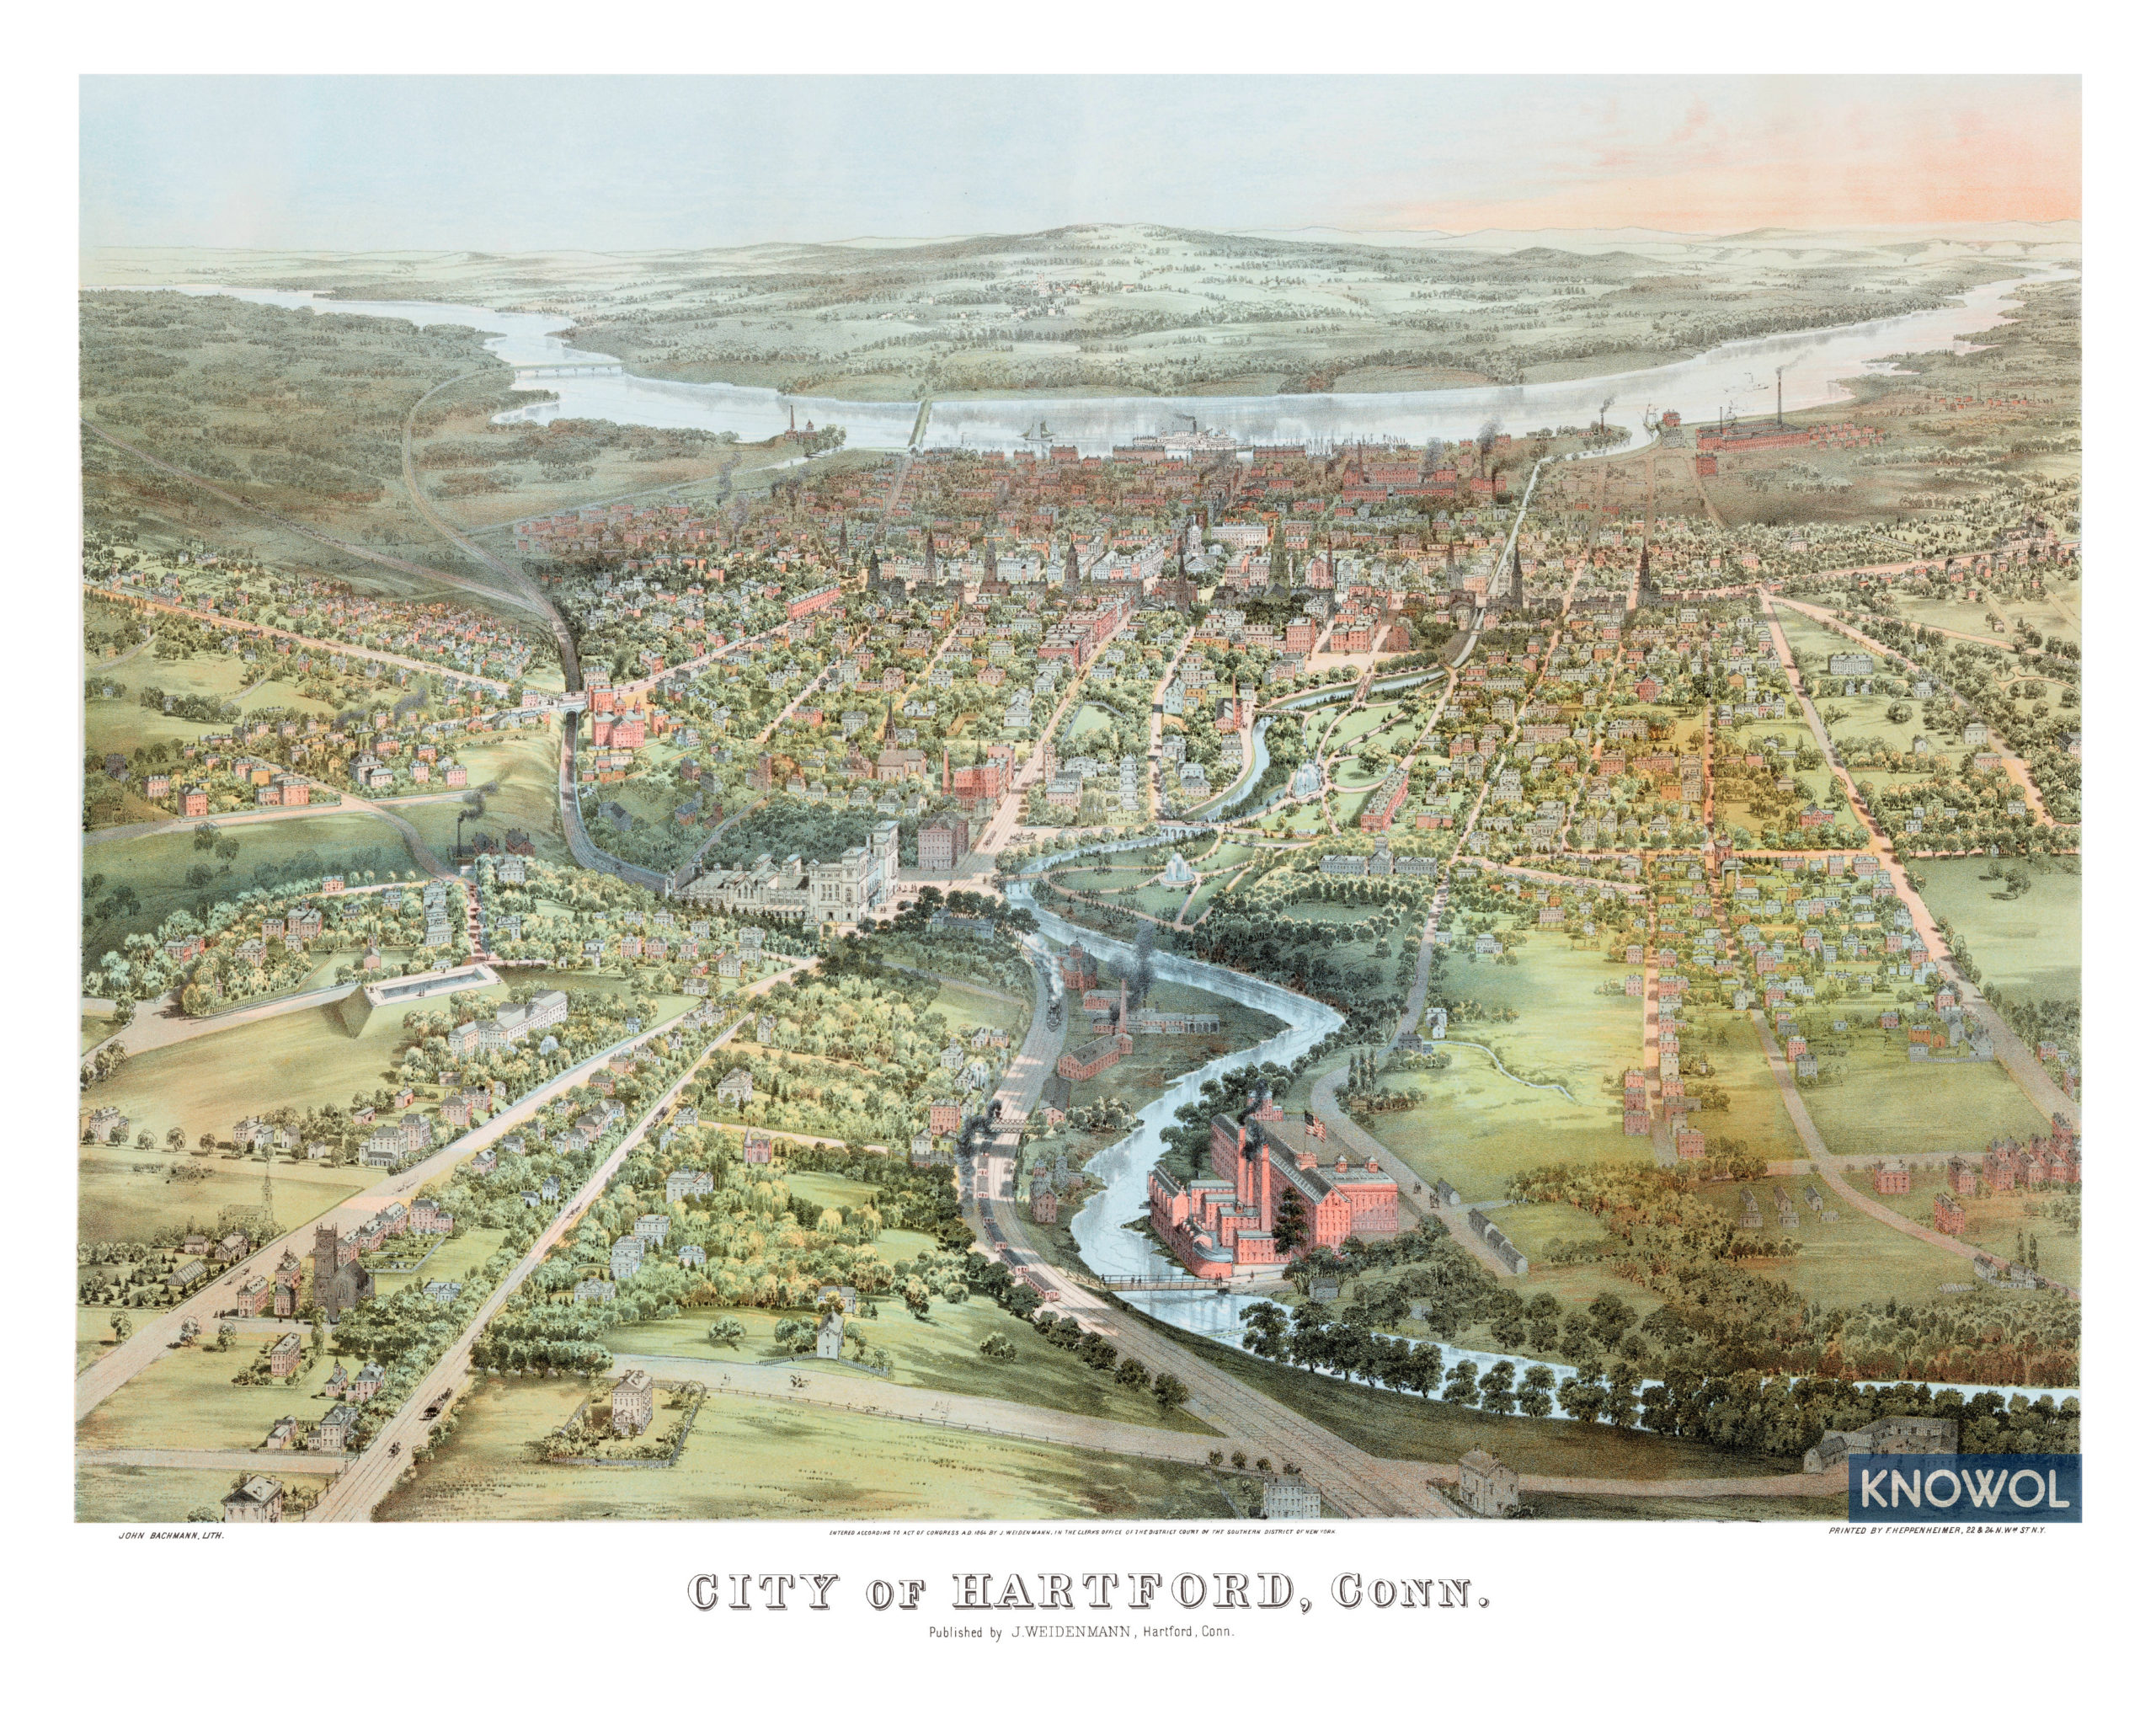 Beautifully detailed map of Hartford, Connecticut from 1864 - KNOWOL